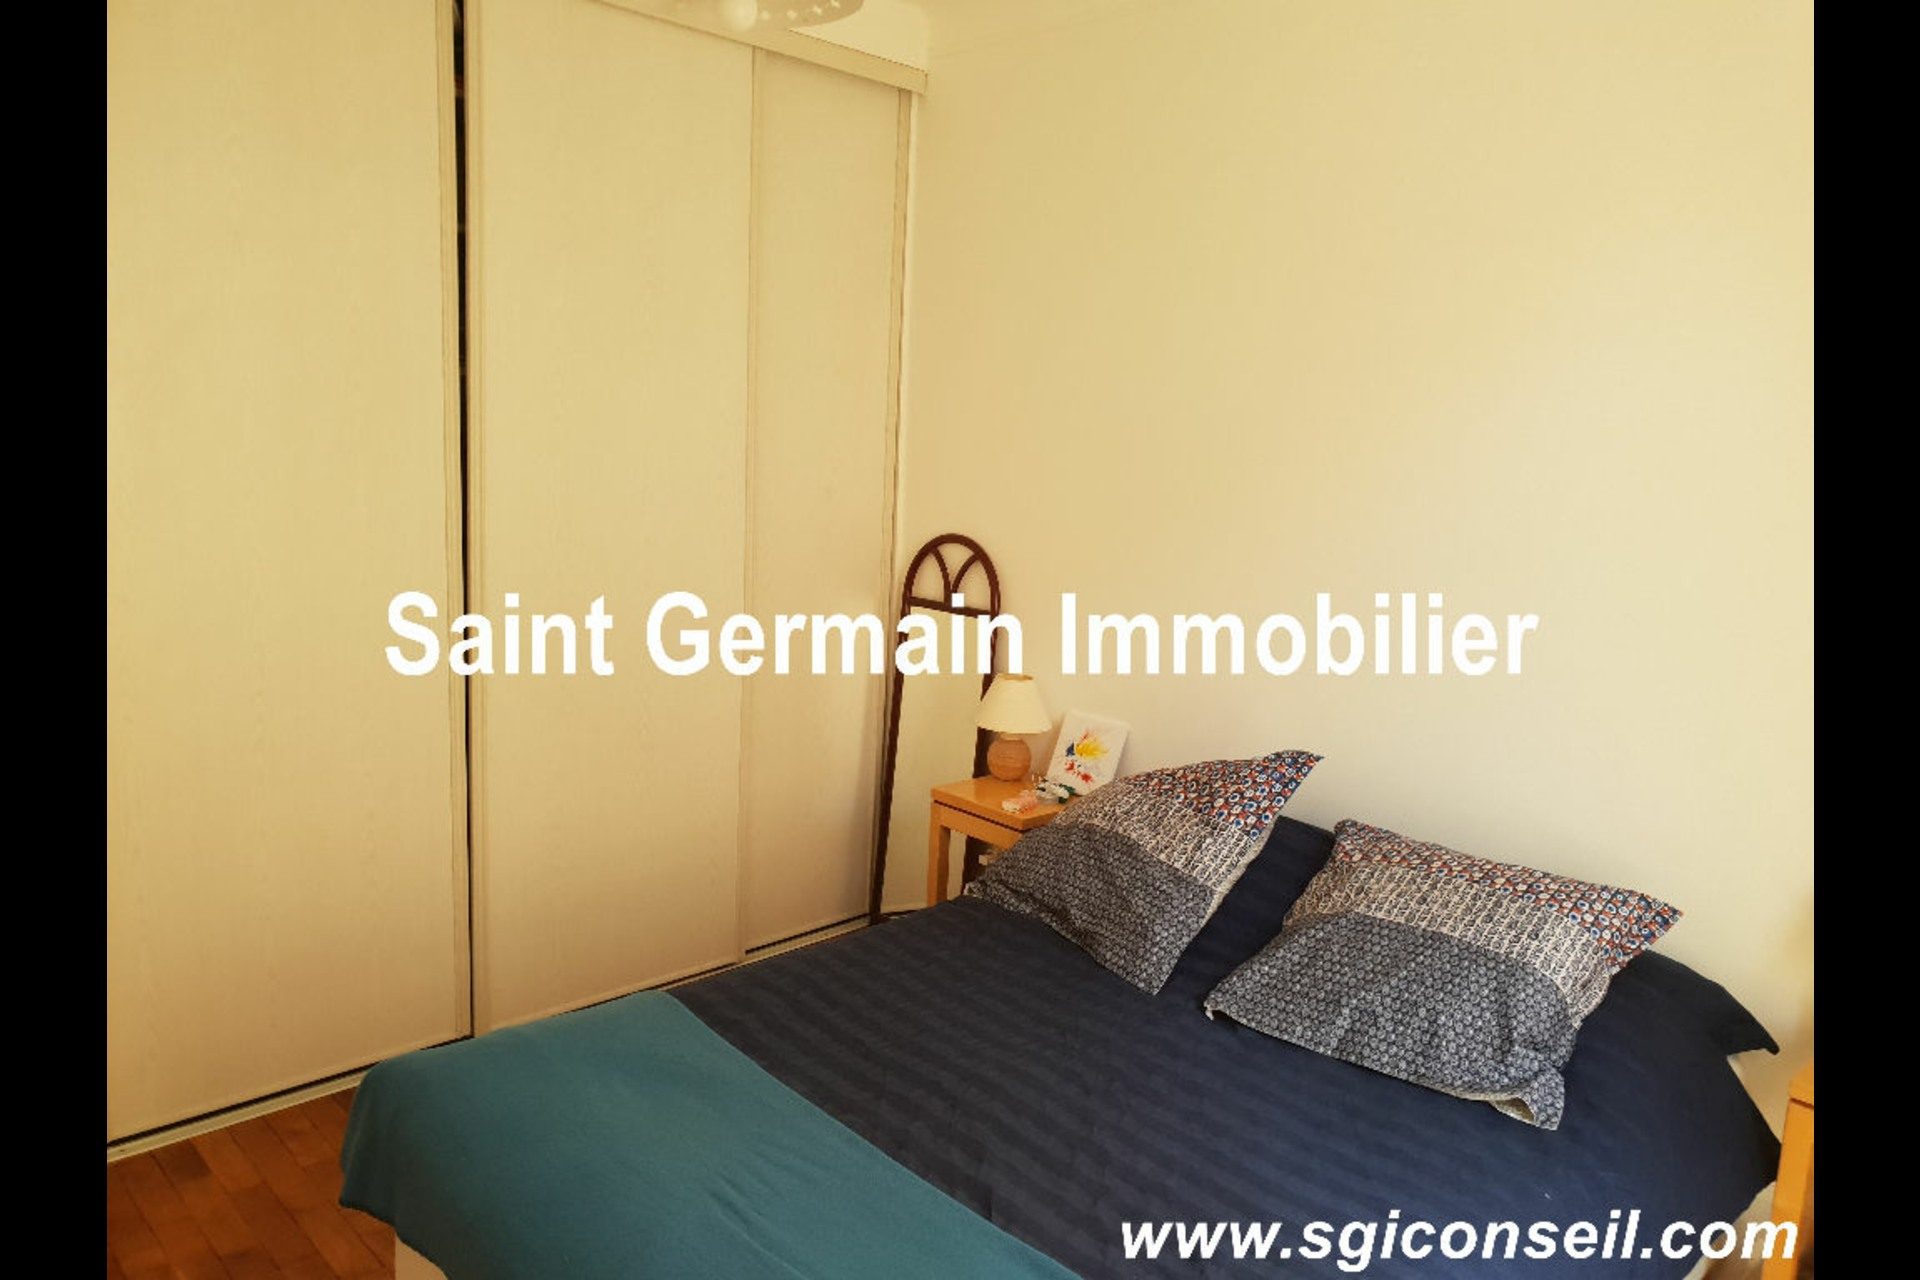 image 4 - Apartment For rent saint germain en laye - 2 rooms